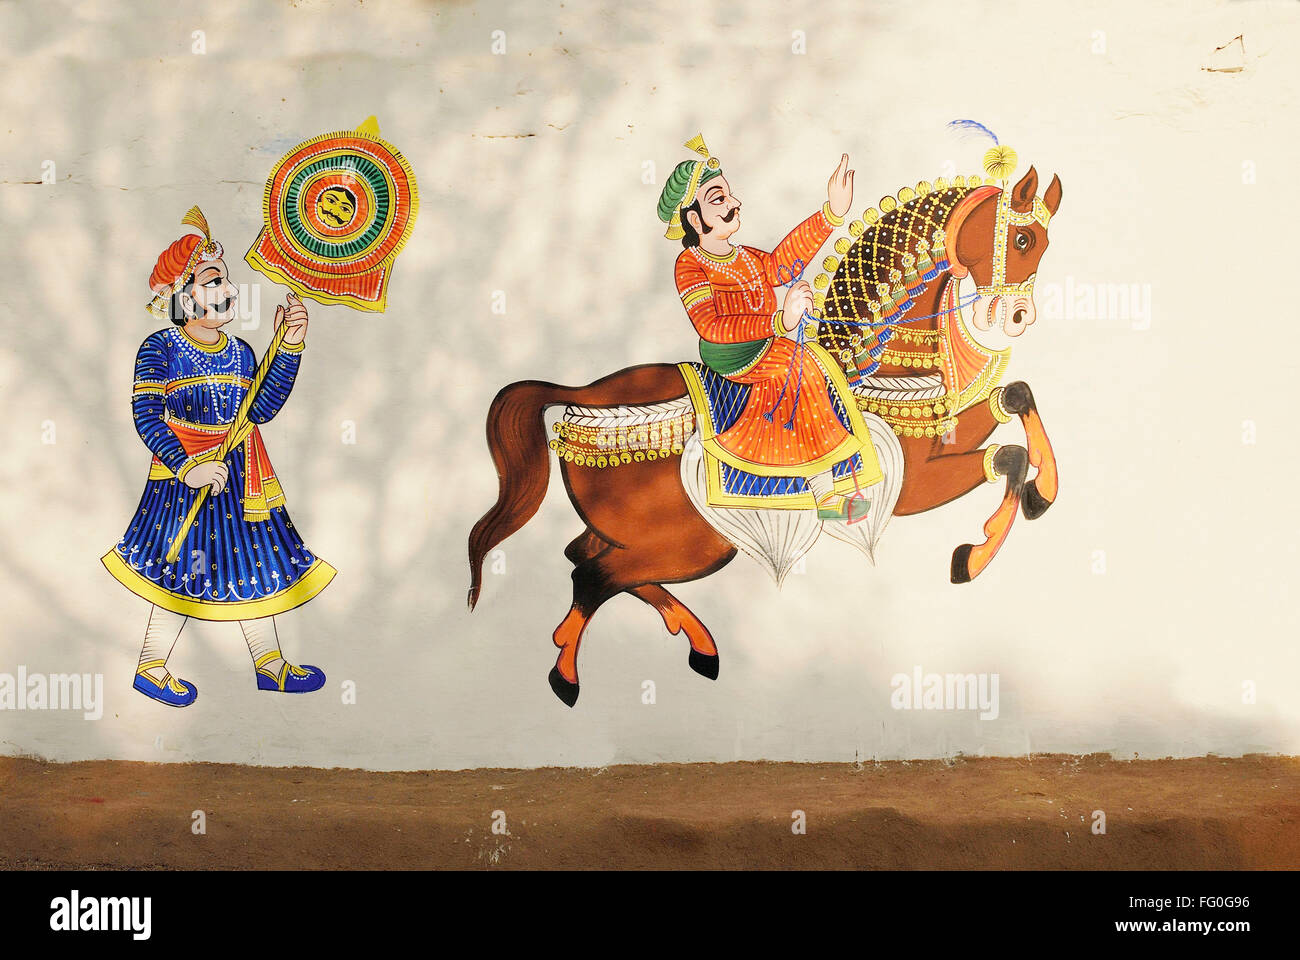 Wall Painting Of Horse At Shilpgram Udaipur Rajasthan India Stock Photo Alamy